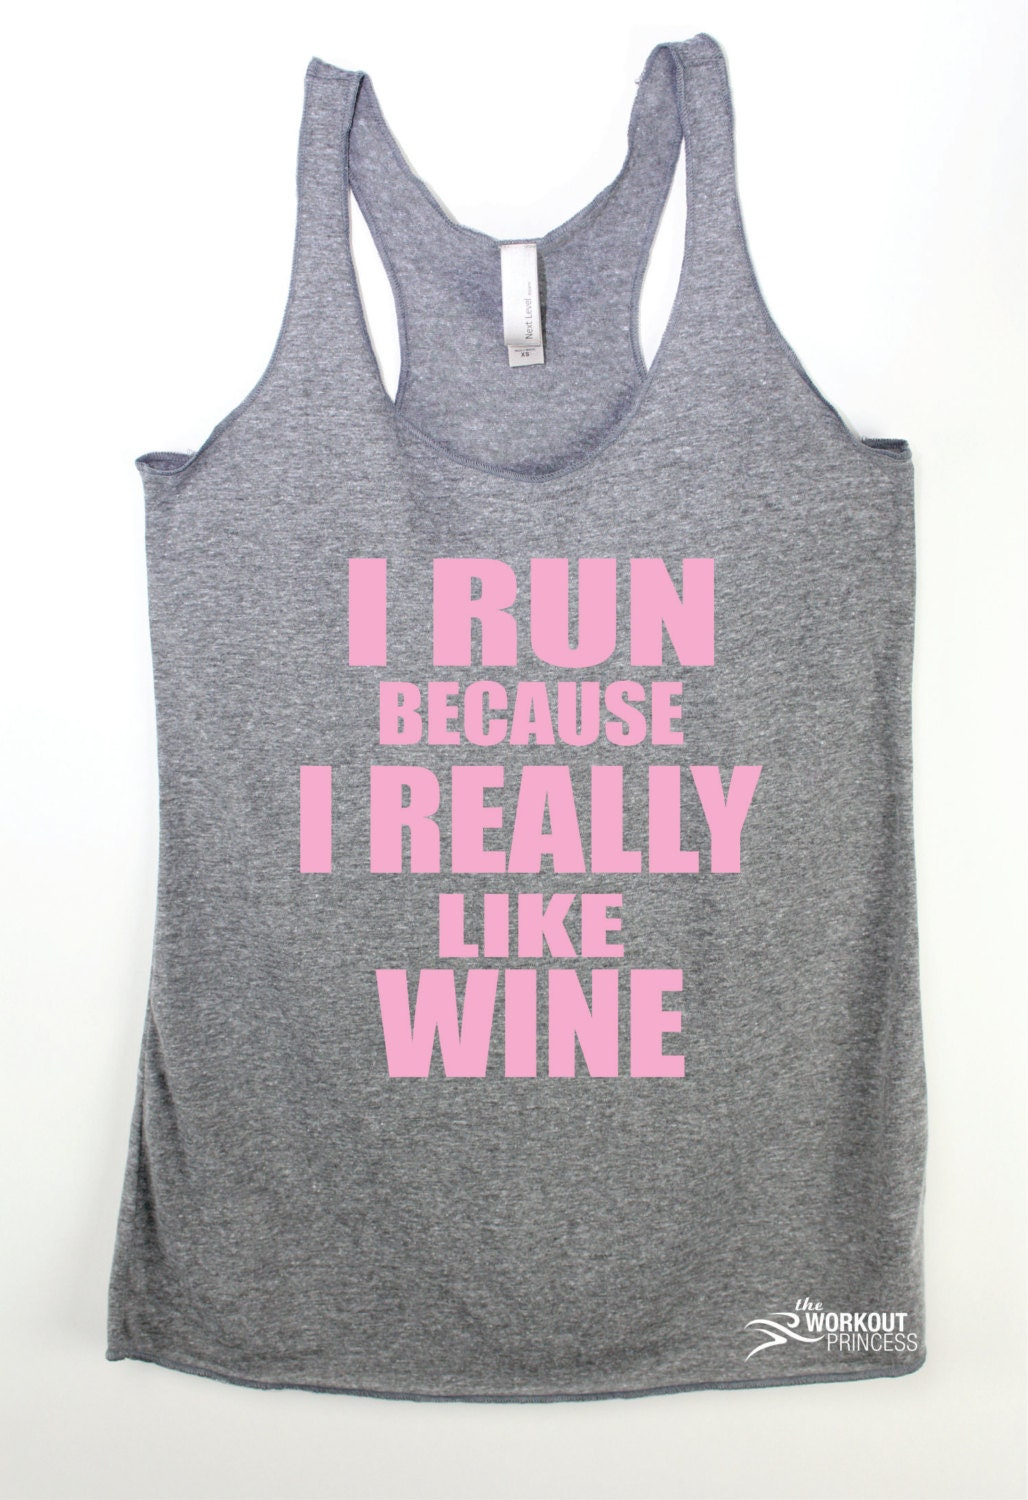 Shop for women's workout tank tops at trueiupnbp.gq Enjoy free shipping and returns with NikePlus.